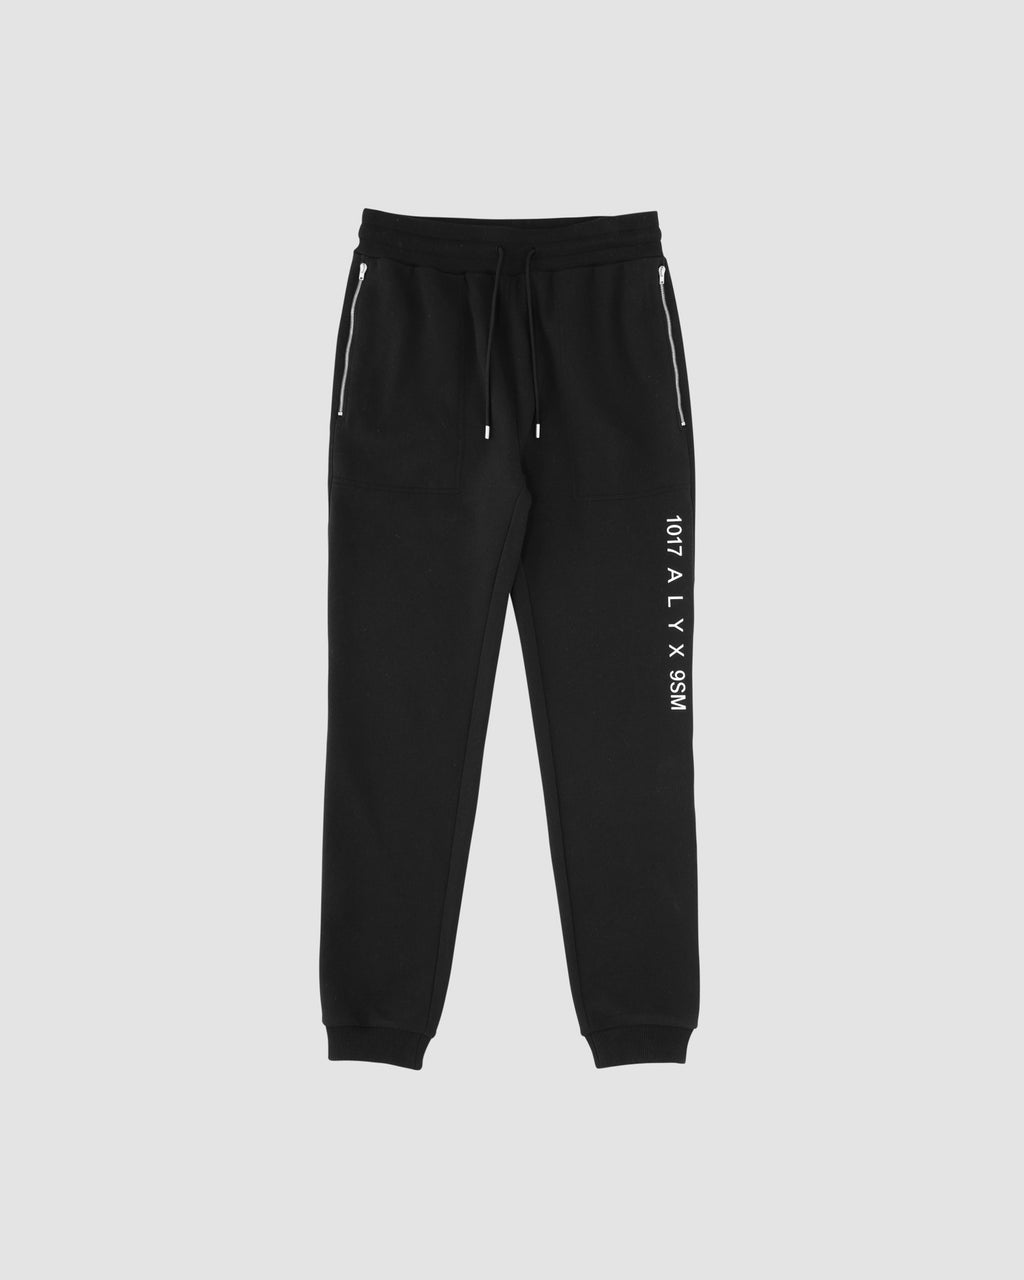 1017 ALYX 9SM | LOGO SWEATPANT | Pants | Black, F19, Visual